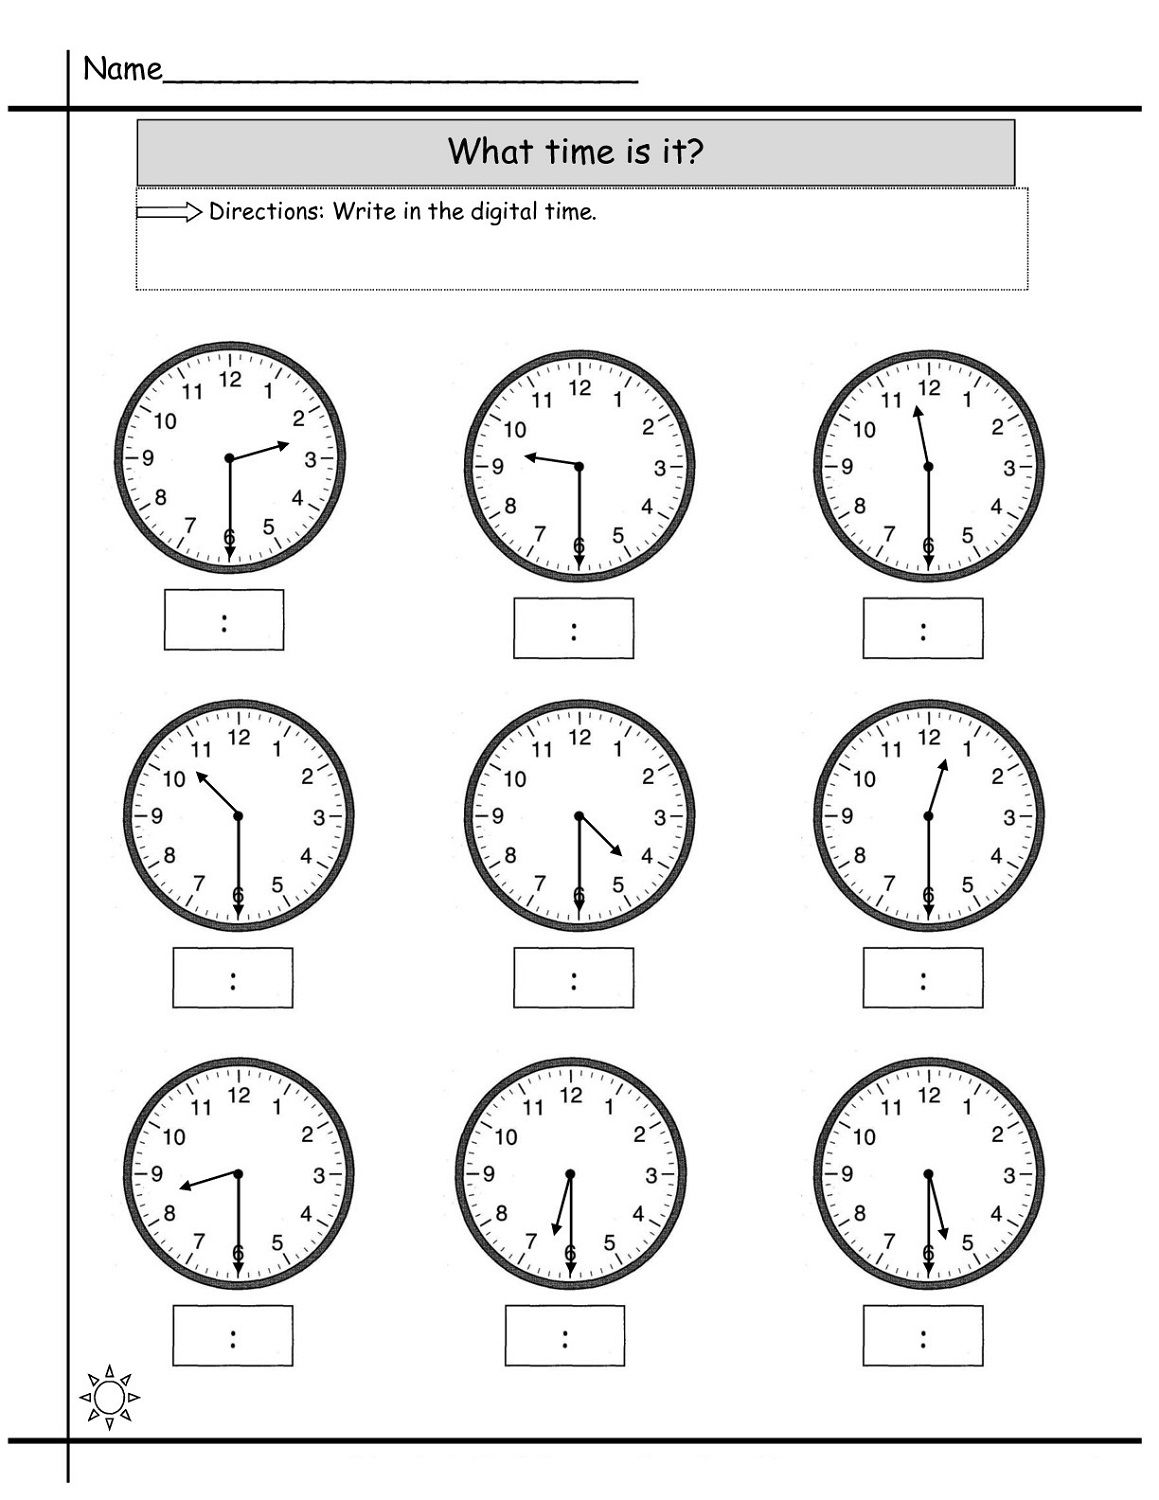 Blank Clock Worksheet To Print Kids Worksheets Printable Worksheets To Do Blank Clock Worksheet To Print Activity Shelter